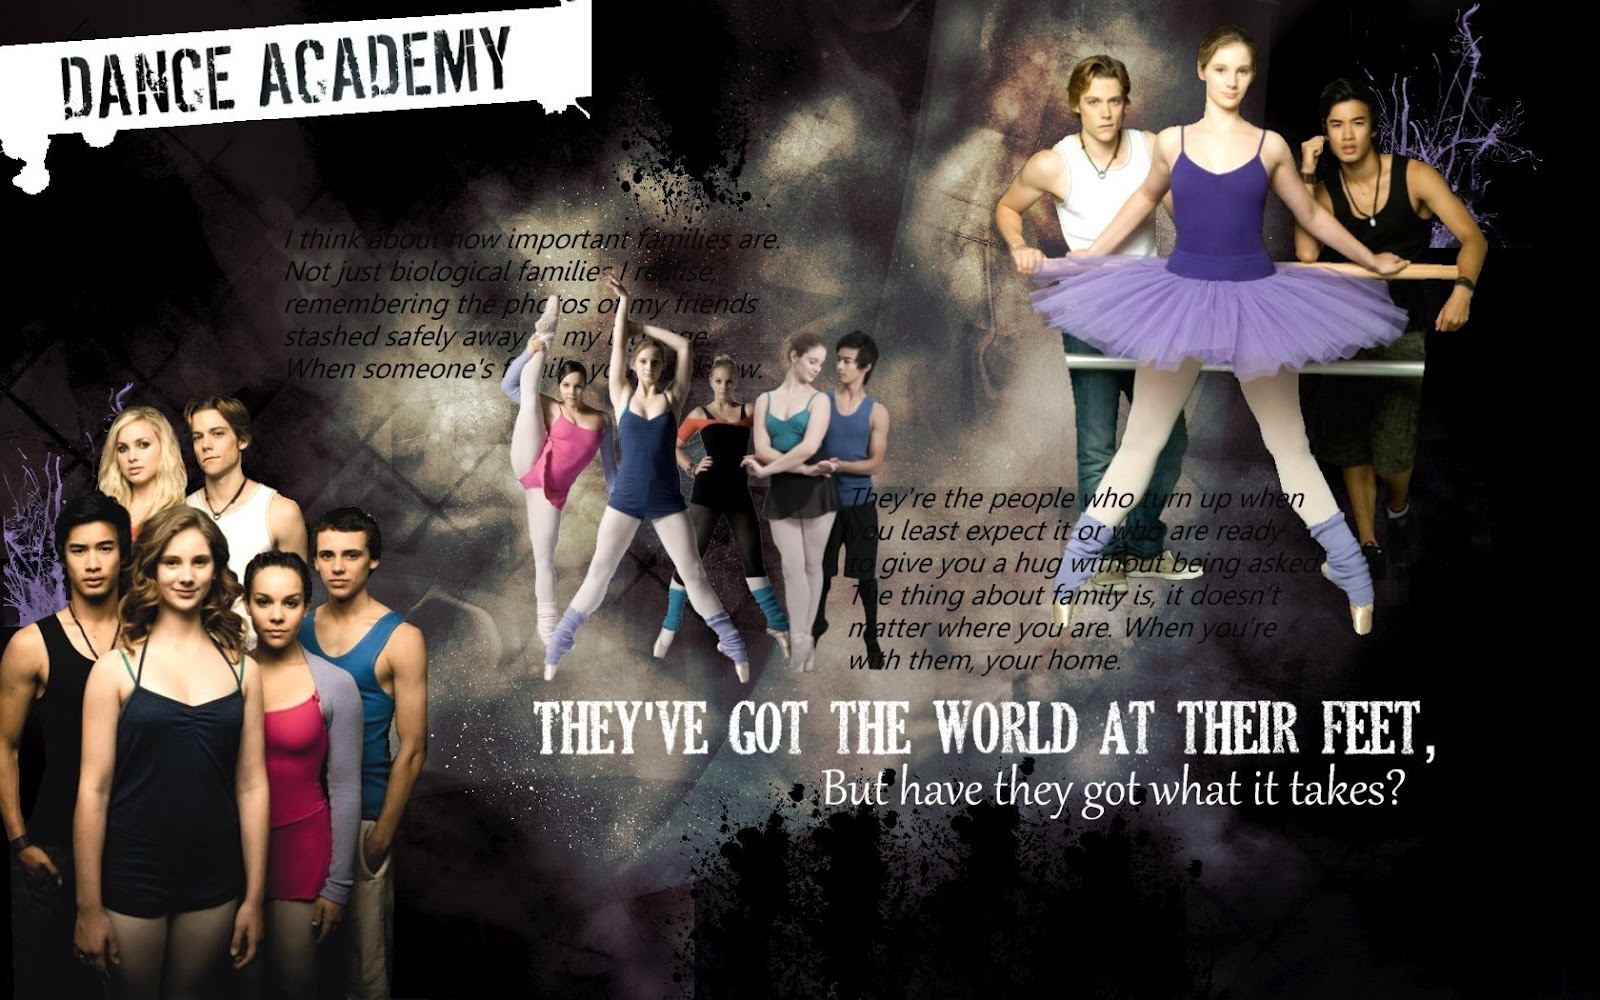 http://1.bp.blogspot.com/-dZ29YRlX0os/T_w3vQPi7kI/AAAAAAAAAac/L5_Va_tKp6E/s1600/My-incredibly-fancy-but-crap-wallpaper-dance-academy-21197911-1680-1050.jpg